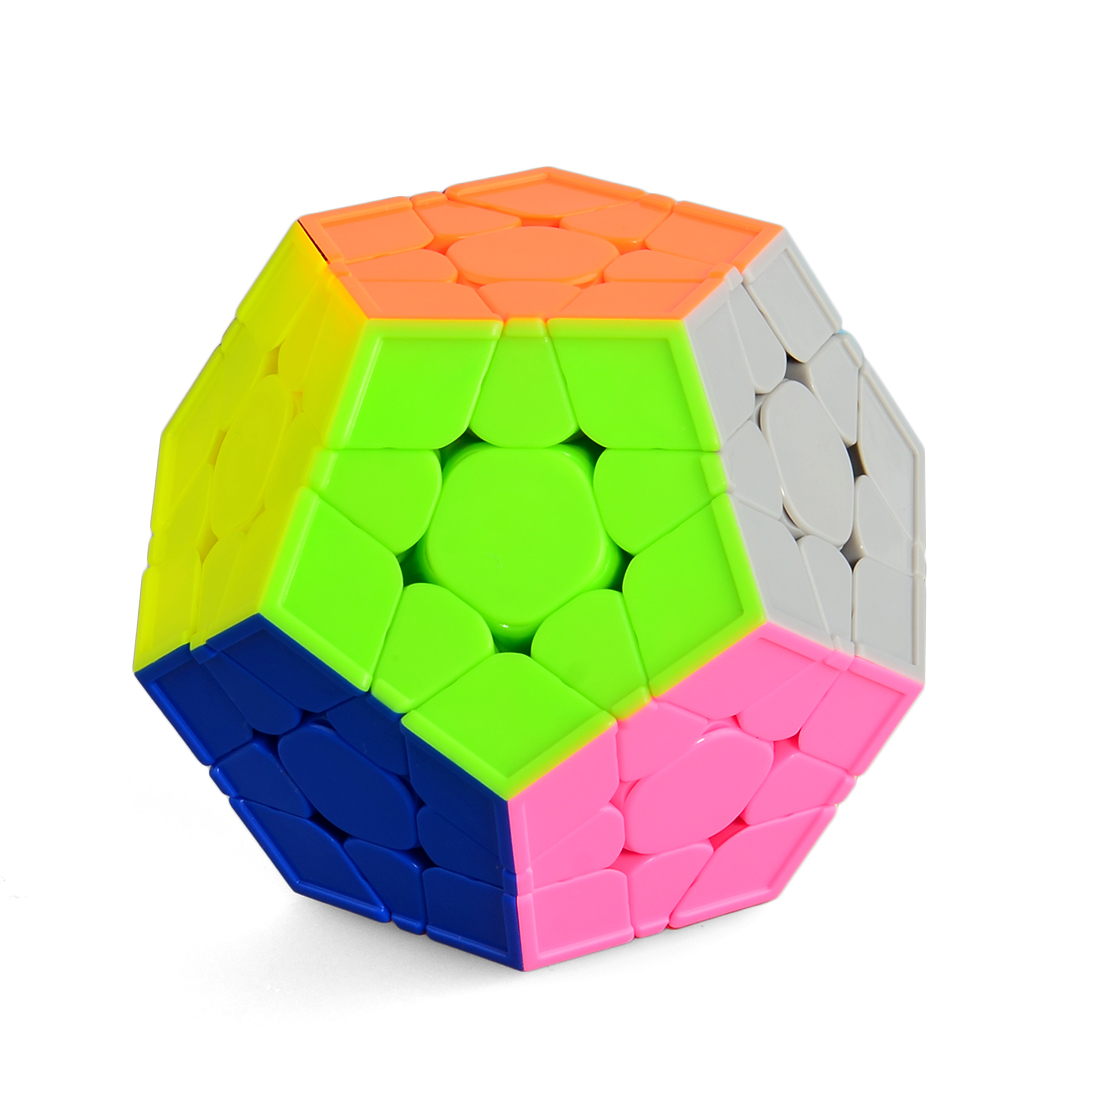 Smooth Durable Speed Megaminx Cube 3x3 Dodecahedron Teasers Puzzle Cube Toys For Kids Colorful